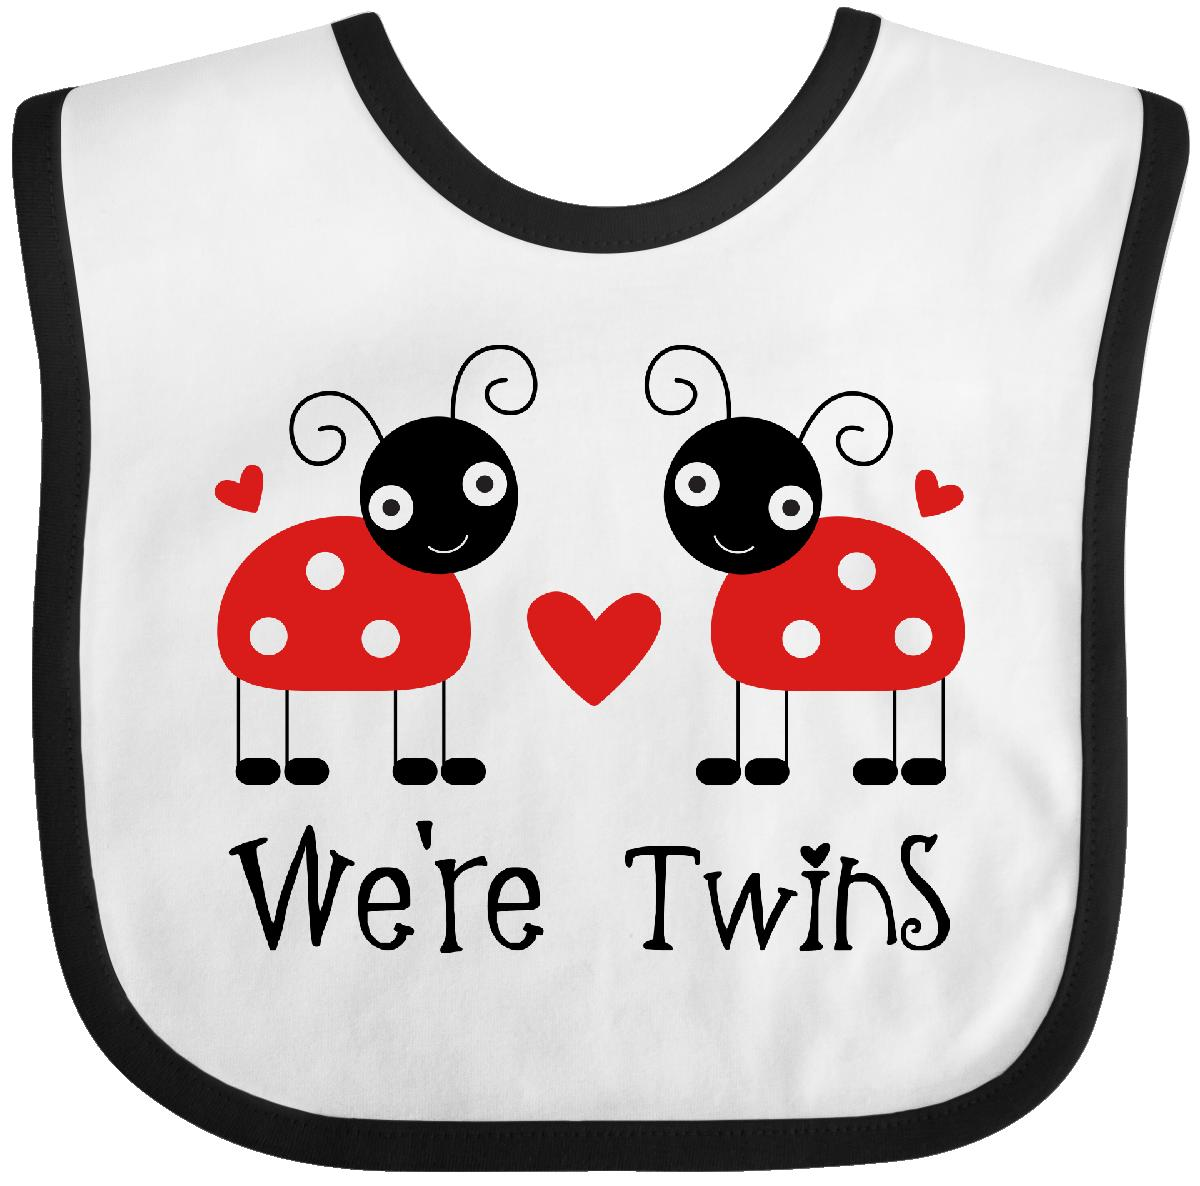 Inktastic We're Twins Ladybug Baby Bib Twin Girls Cute Kids Gift For Animals Hws